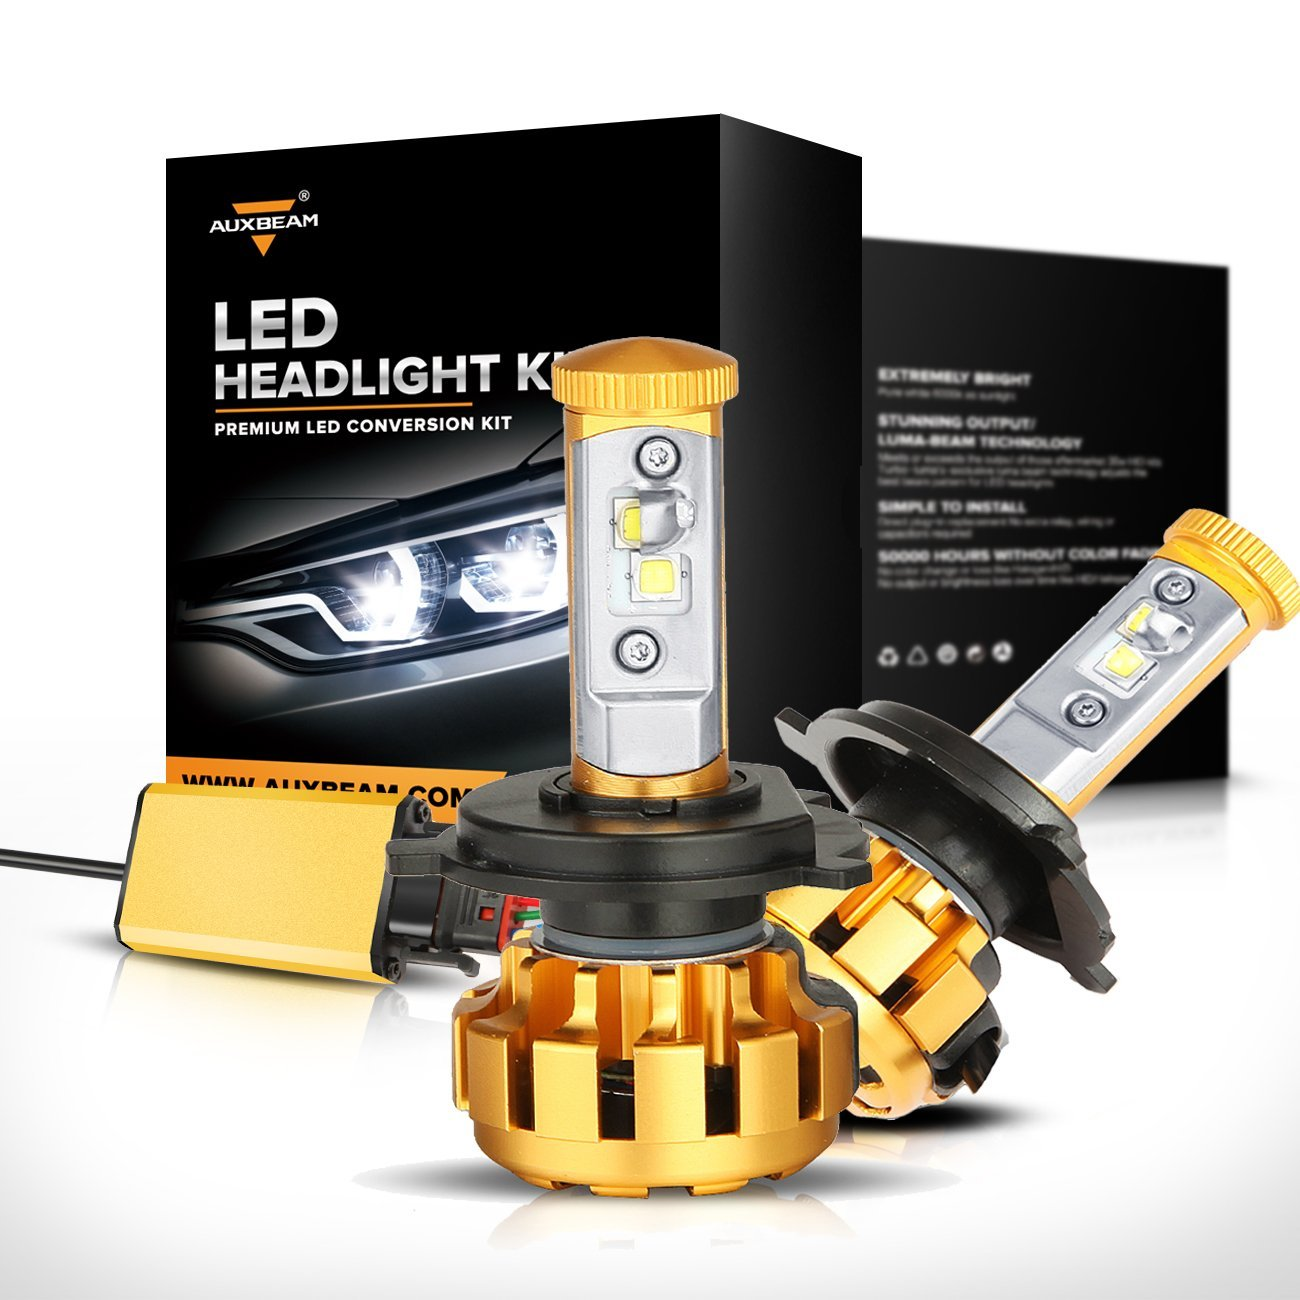 Auxbeam LED Headlight Conversion Kit 6 brightest led headlight bulbs 2017 best headlight bulbs  at gsmx.co